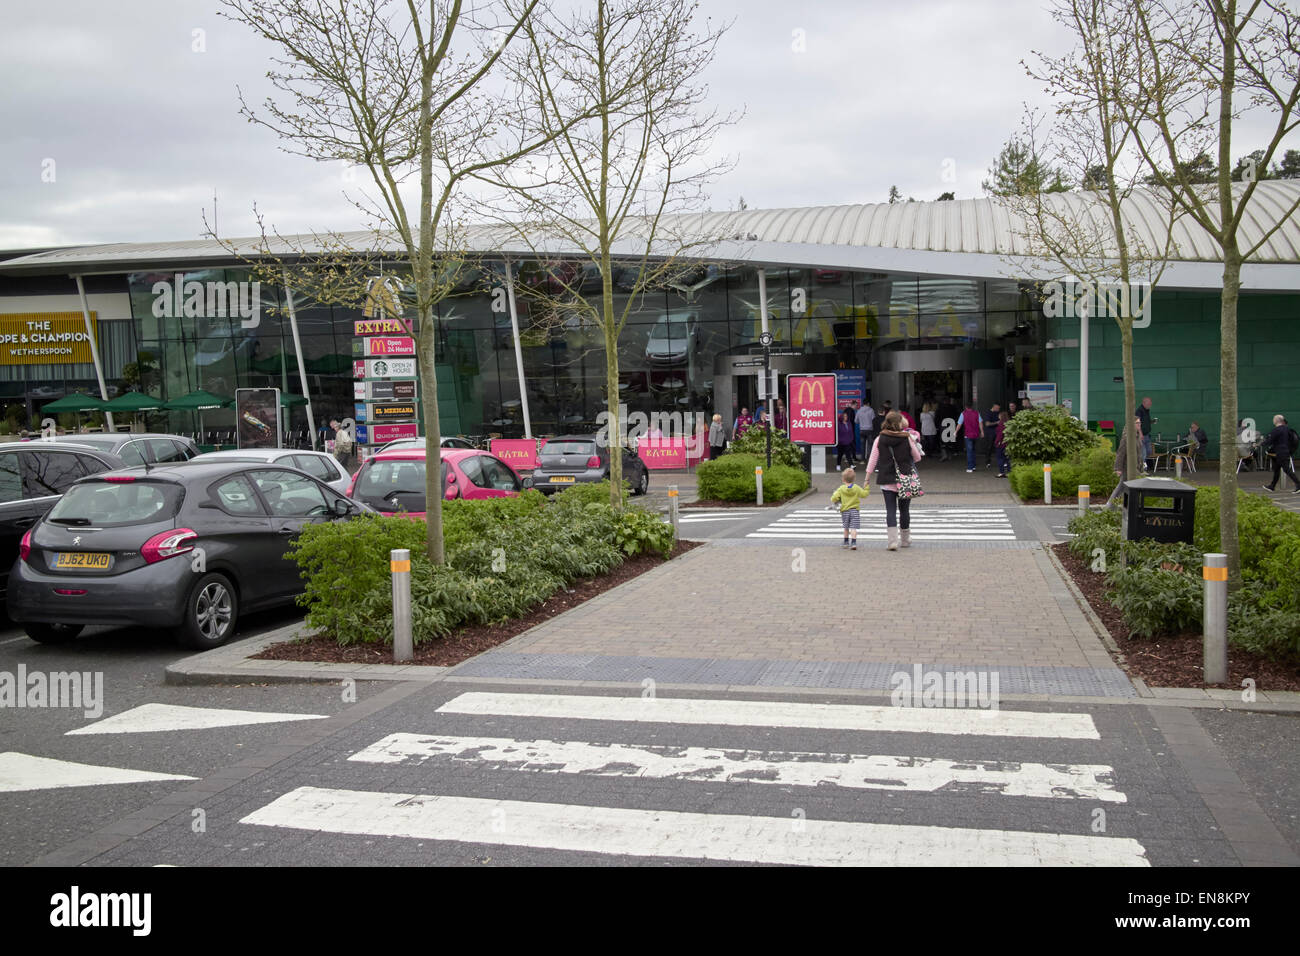 beaconsfield services m40 motorway service station england uk - Stock Image